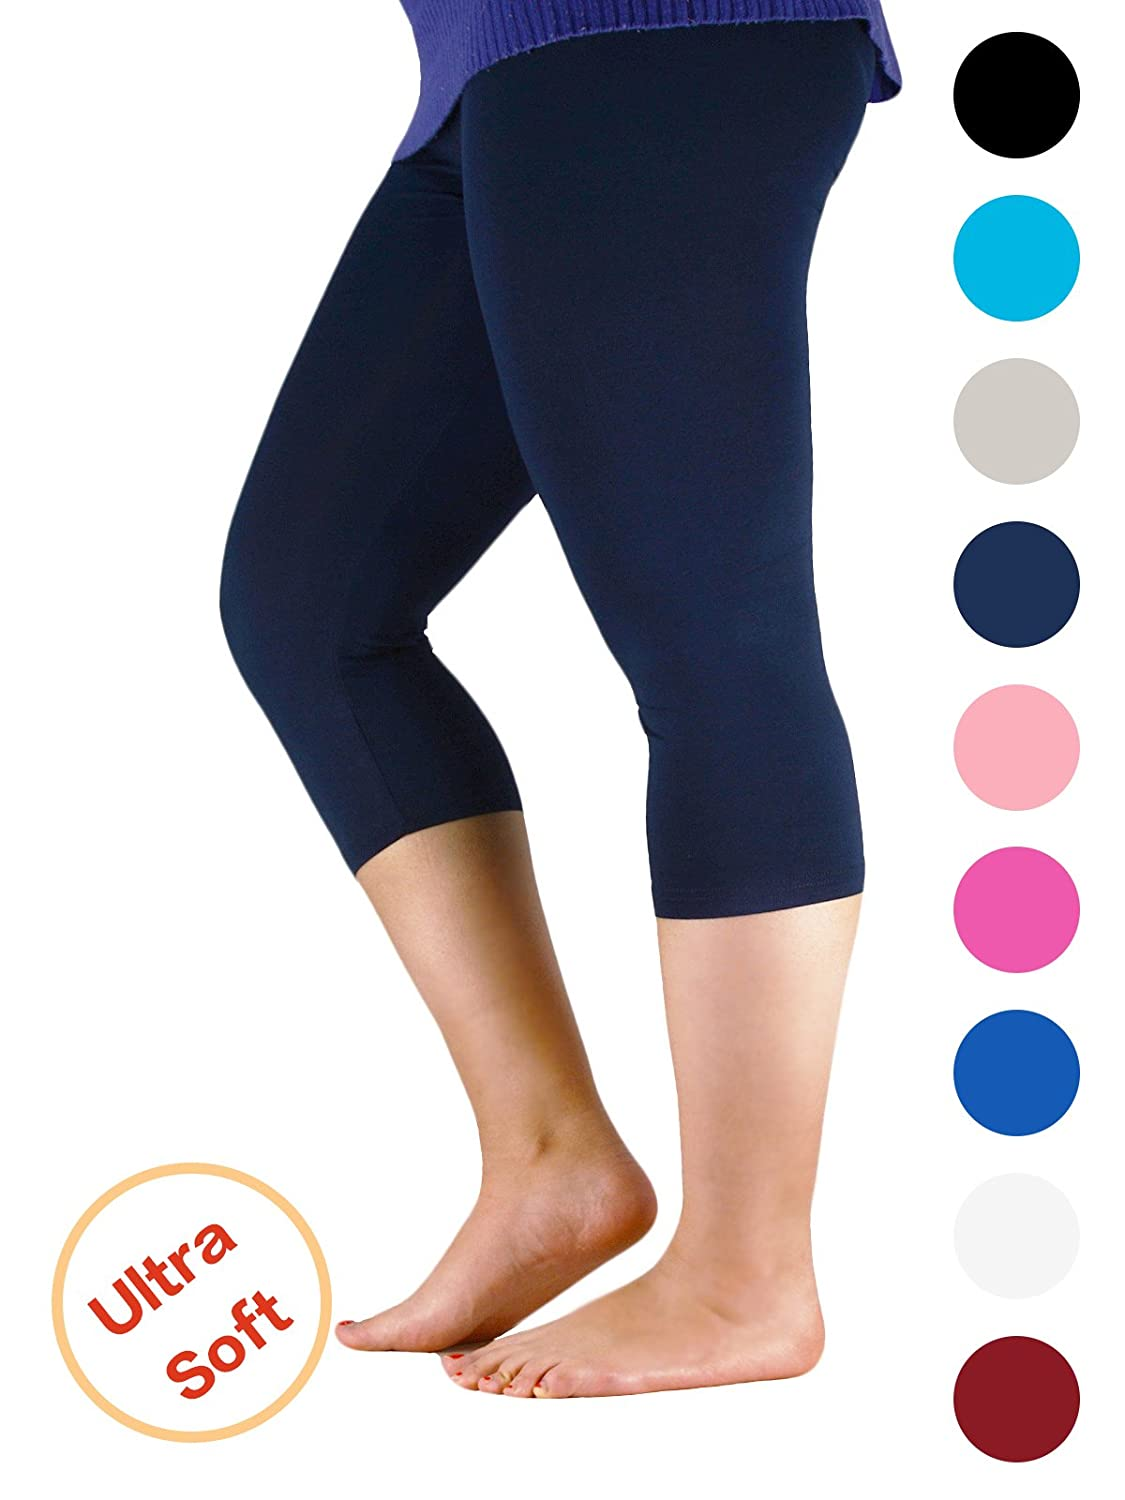 e6c85bf0fe2 Seamless design allows for easy layering. Get comfortable and look fabulous  in these super soft and stretchy leggings.